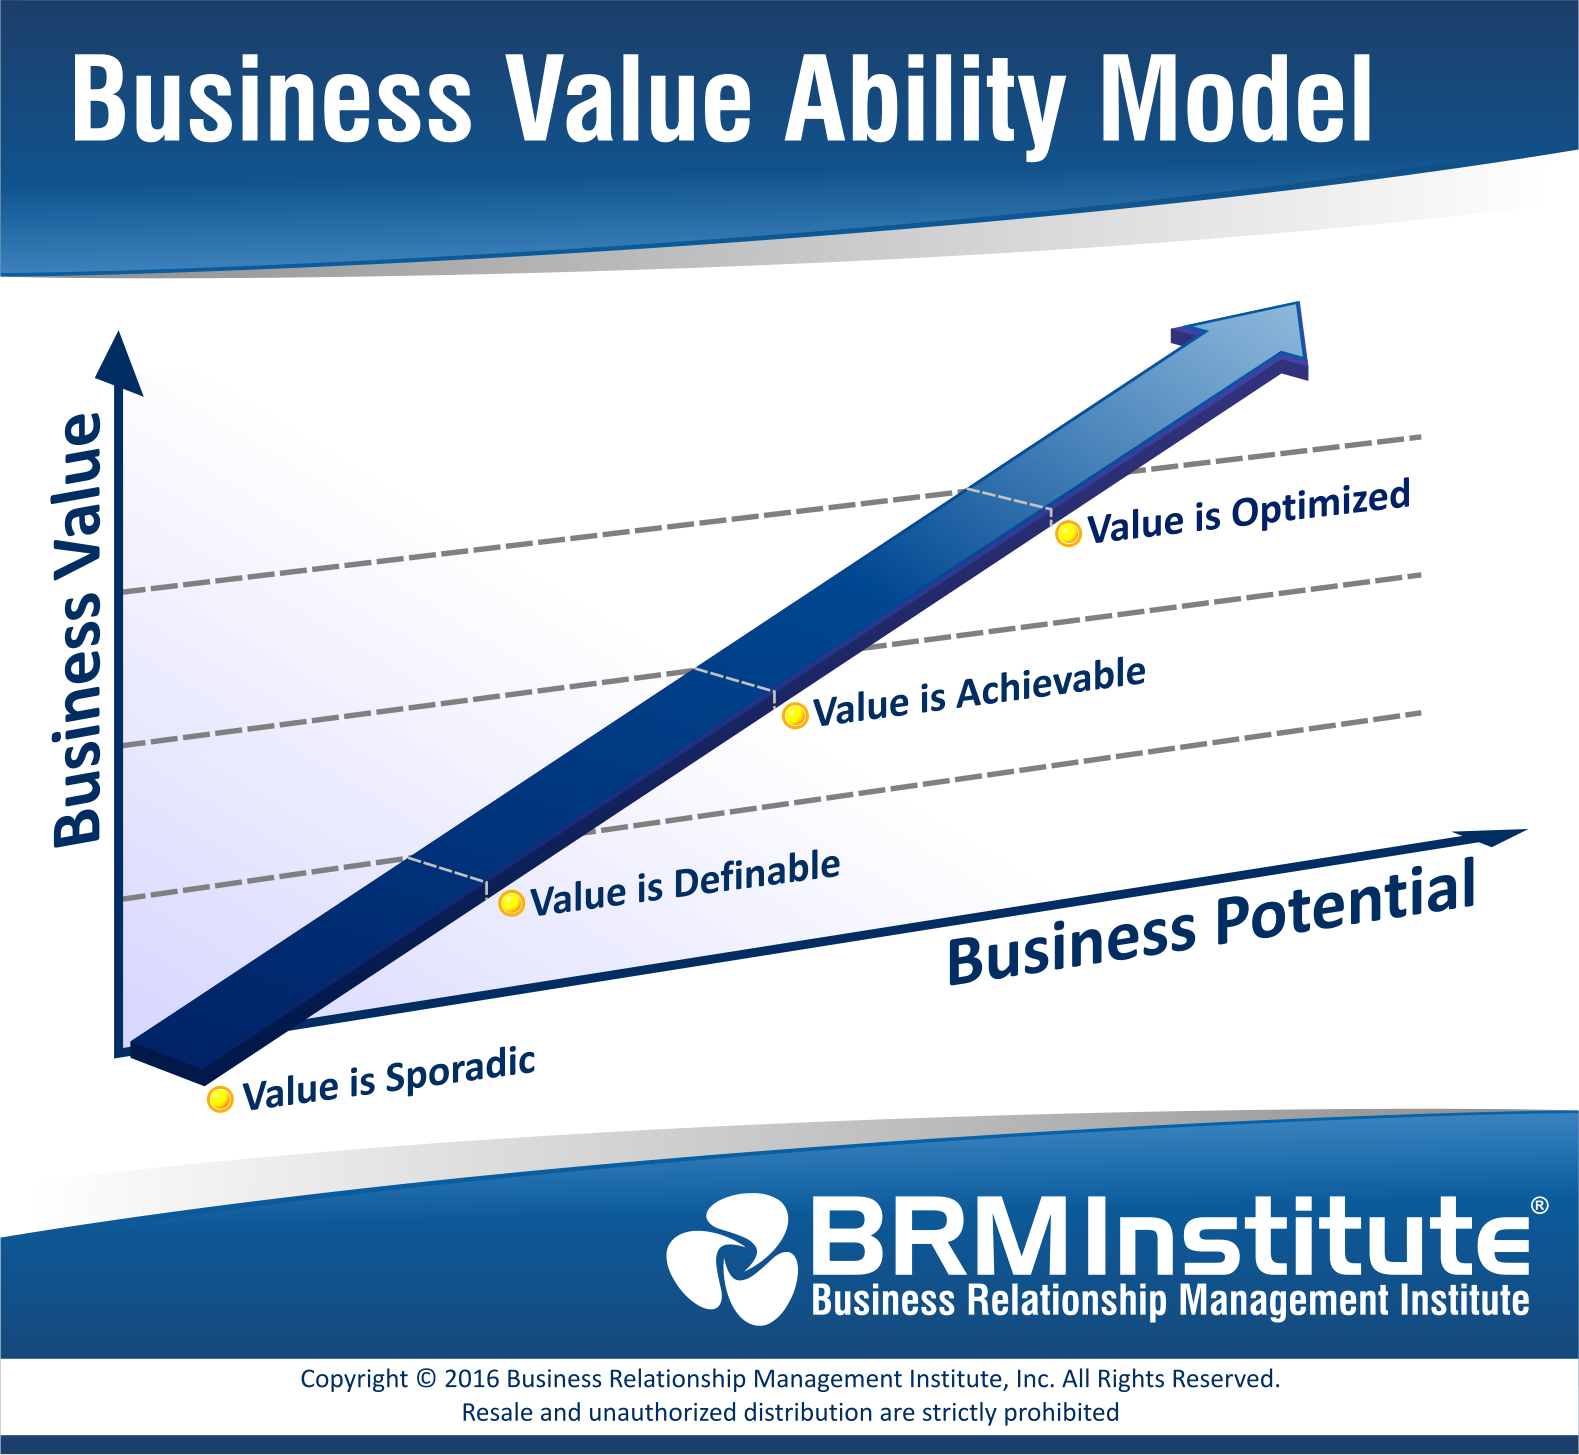 Ceos Do You Know Your Business Value Ability Brm Institute